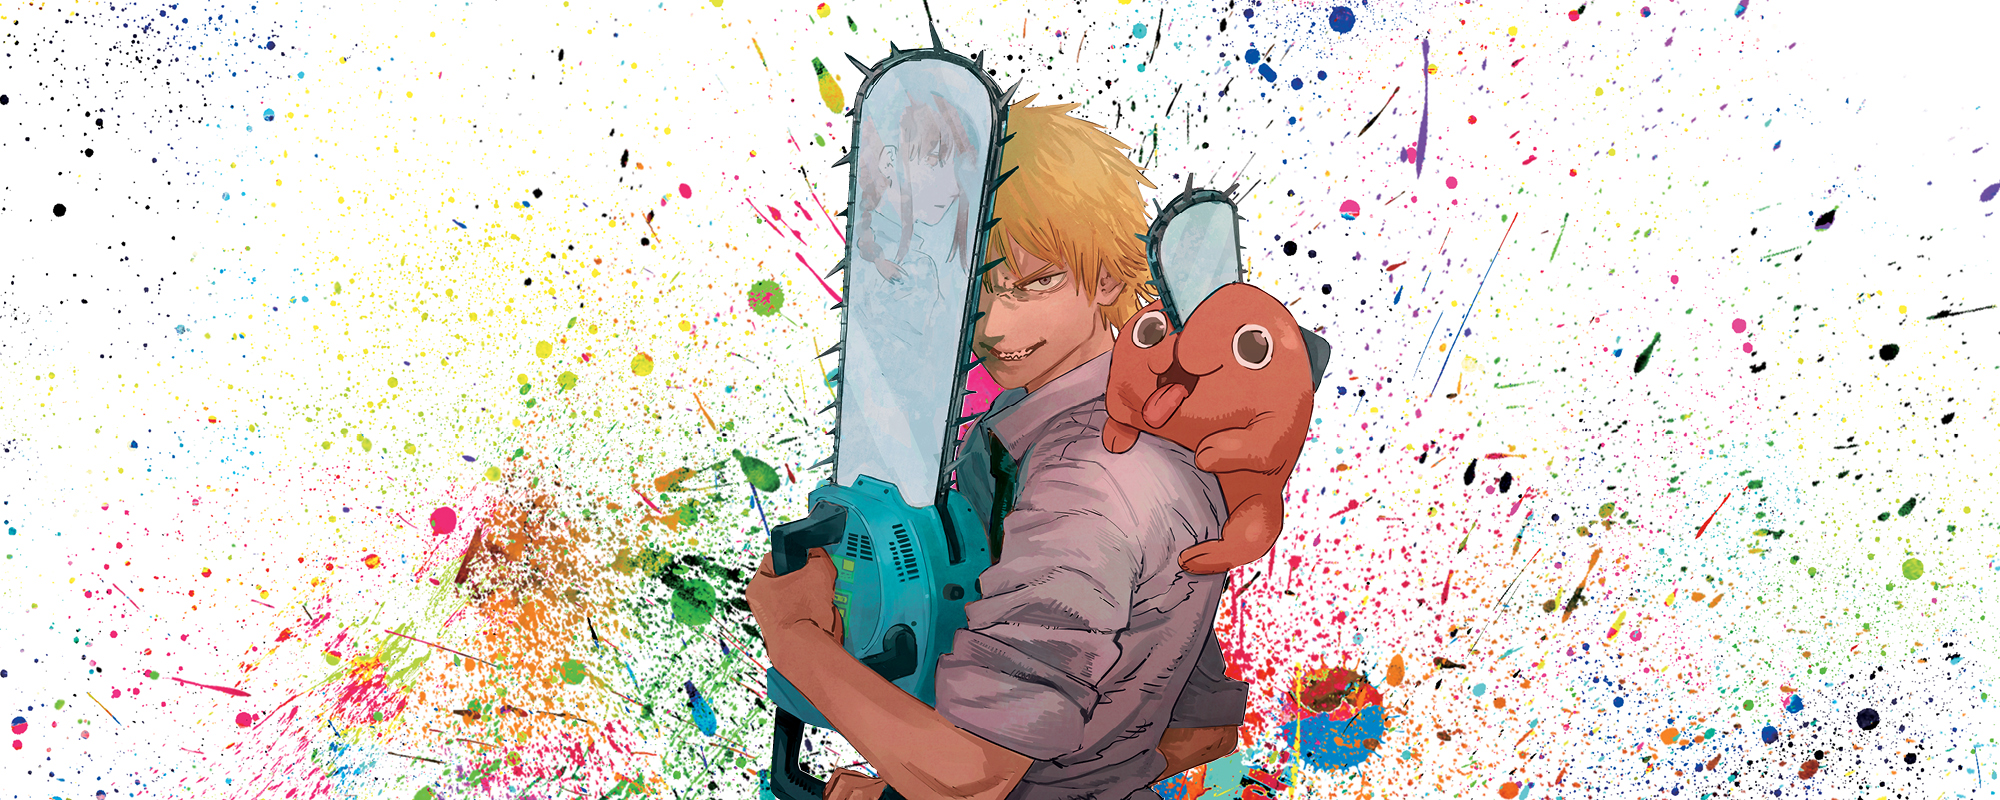 Denji and co. find themselves stuck in space and time in Chainsaw Man.